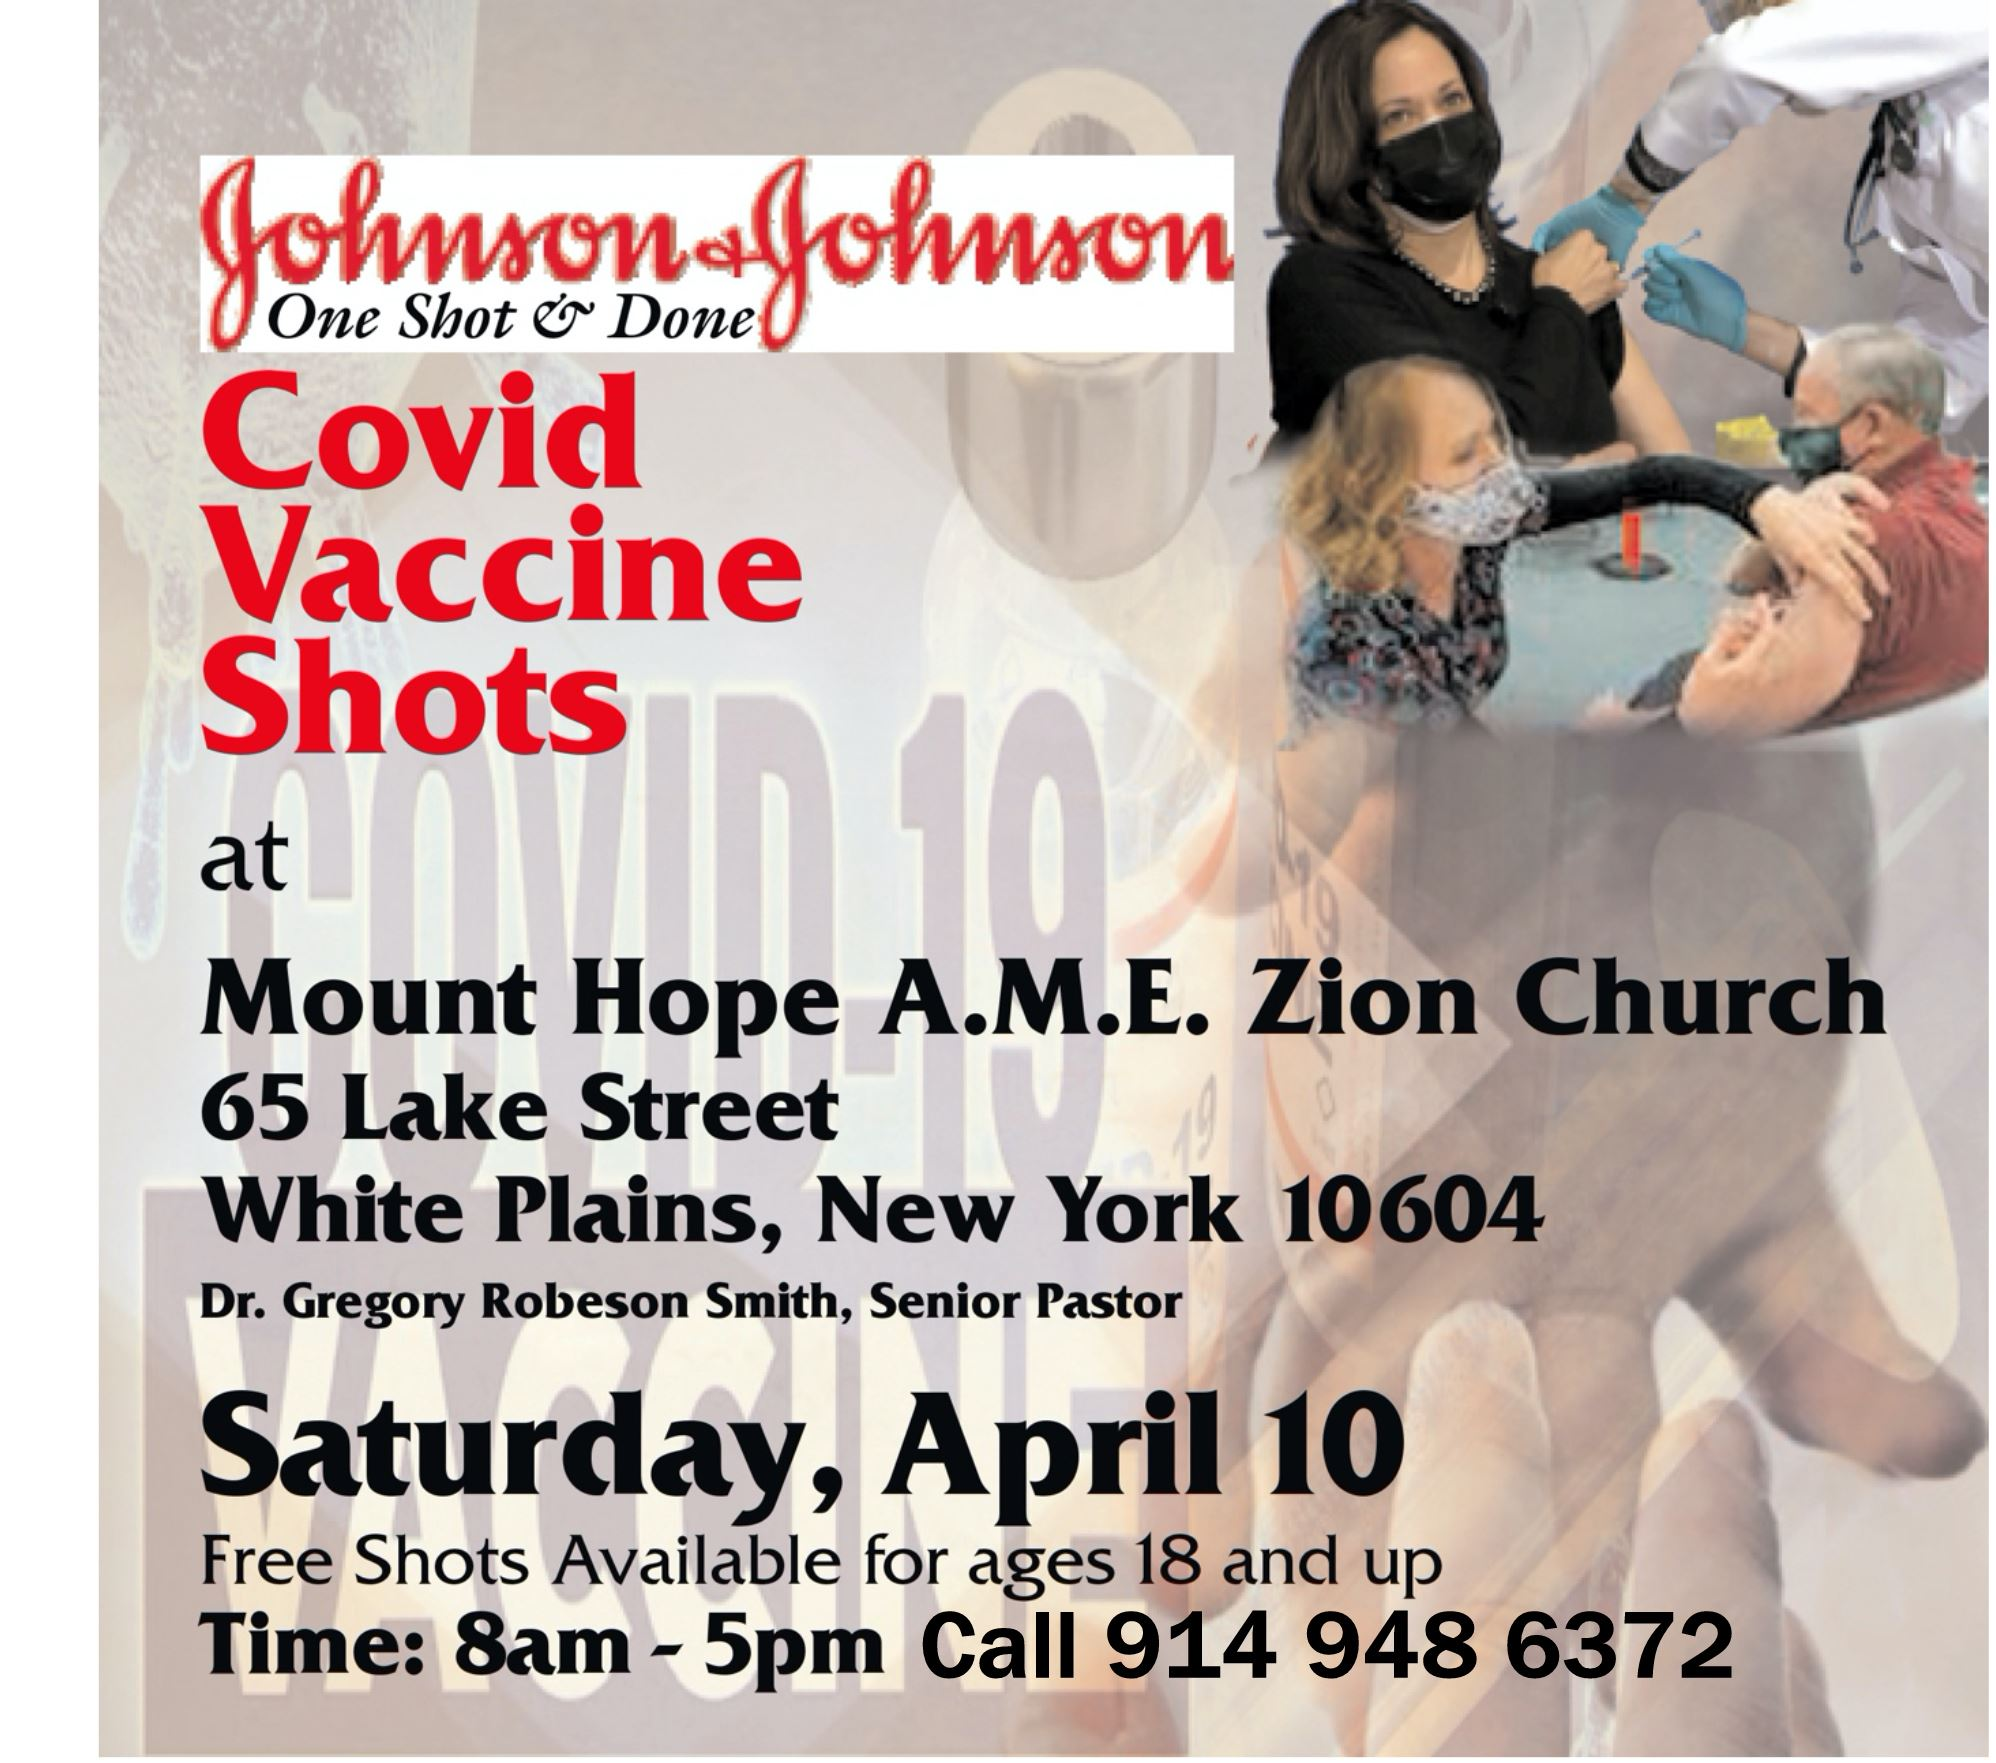 Johnson and johnson vaccine cropped